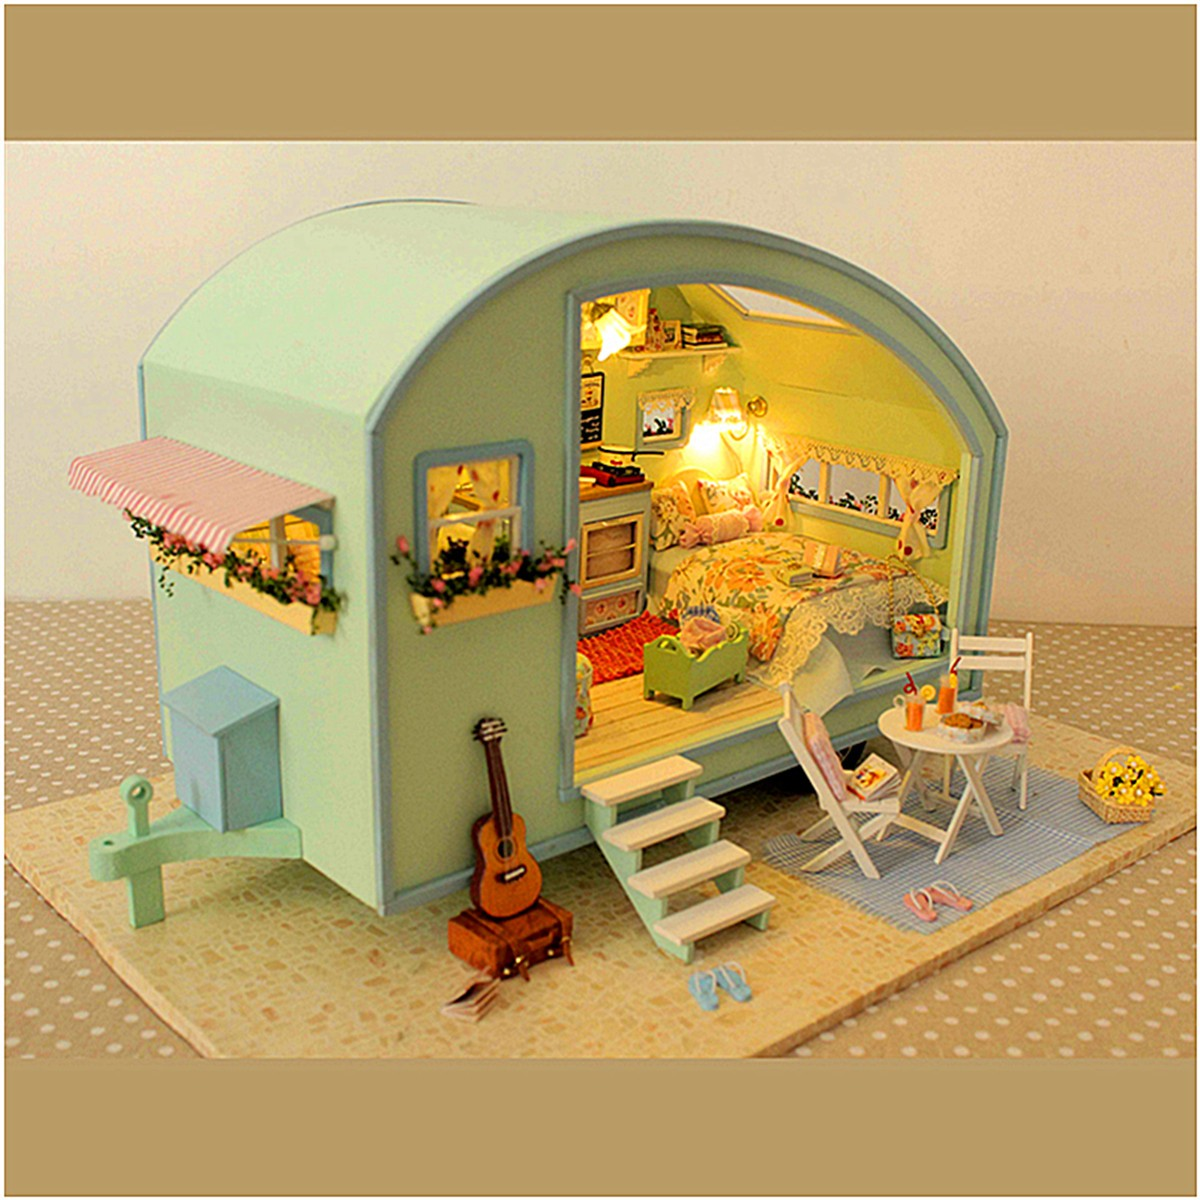 Us 3926 36 Offdiy Tour Of Time Wooden Dollhouse Miniature Kit Doll House Led Music Voice Control Handmade Kits Travel Caravan For Girls In Doll